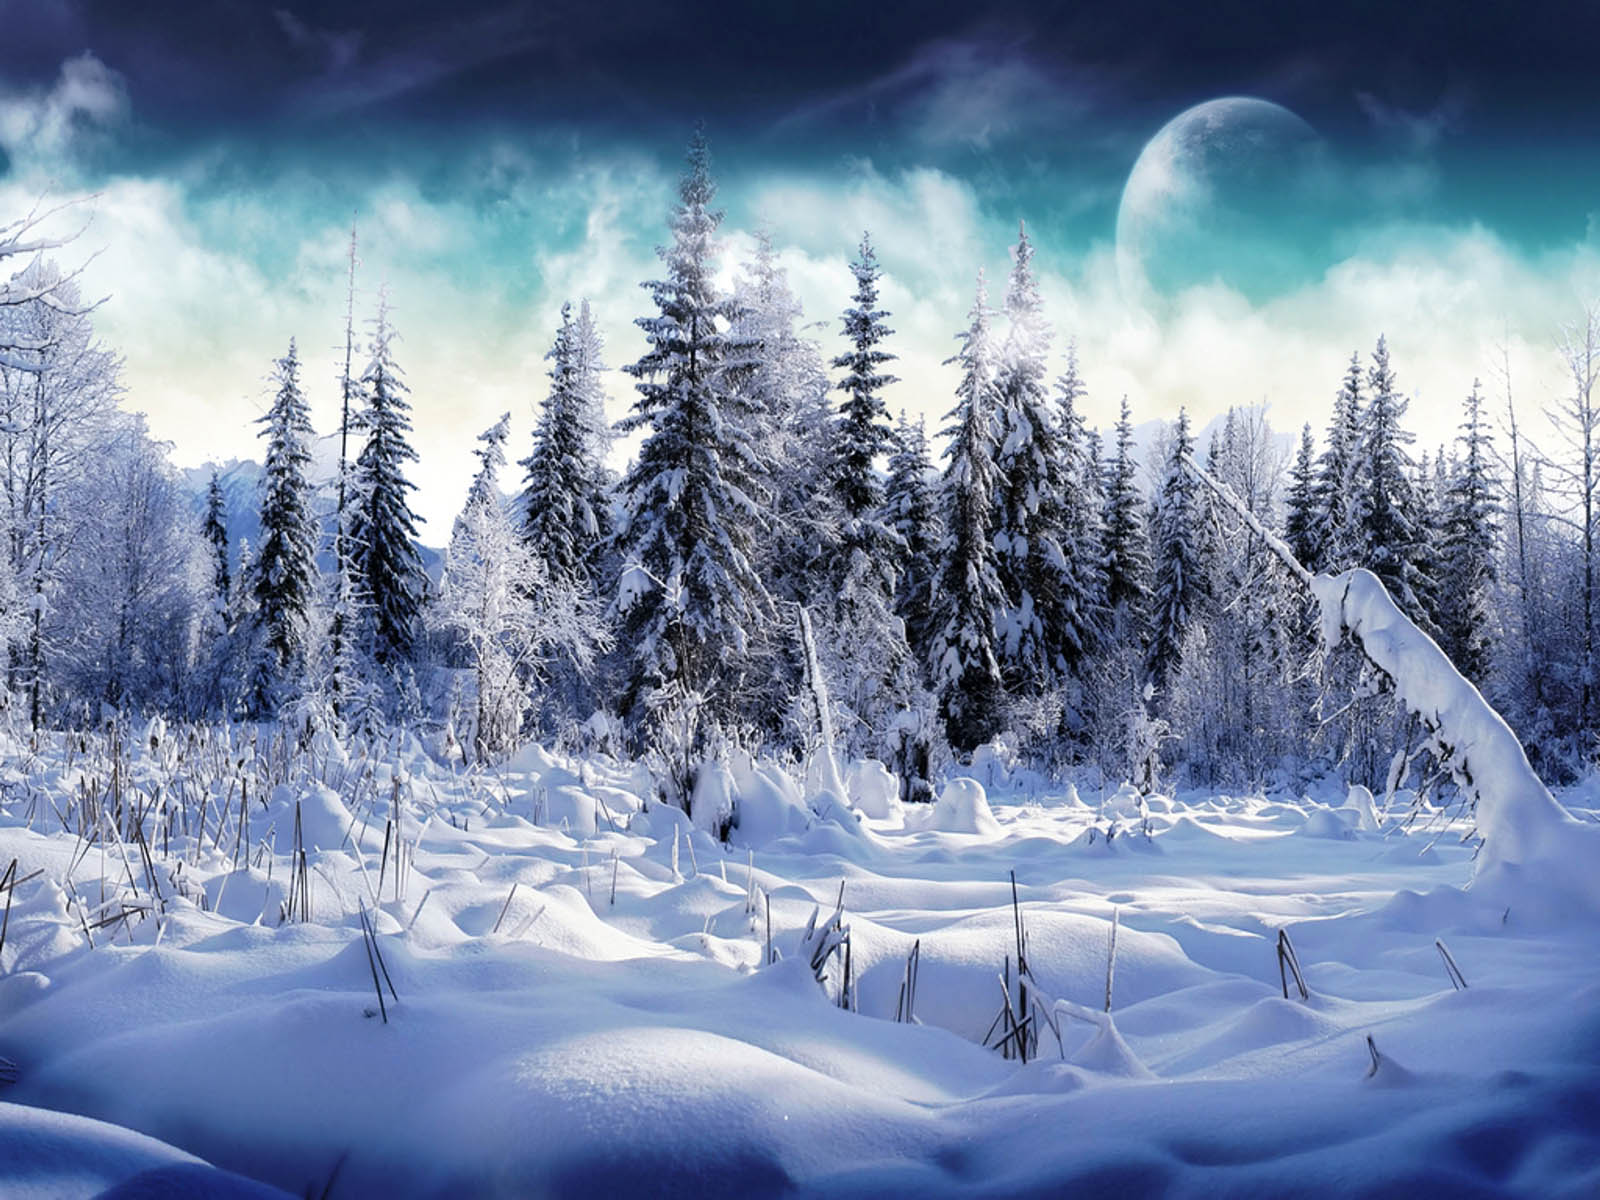 wallpapers Snow Desktop Wallpapers and Backgrounds 1600x1200